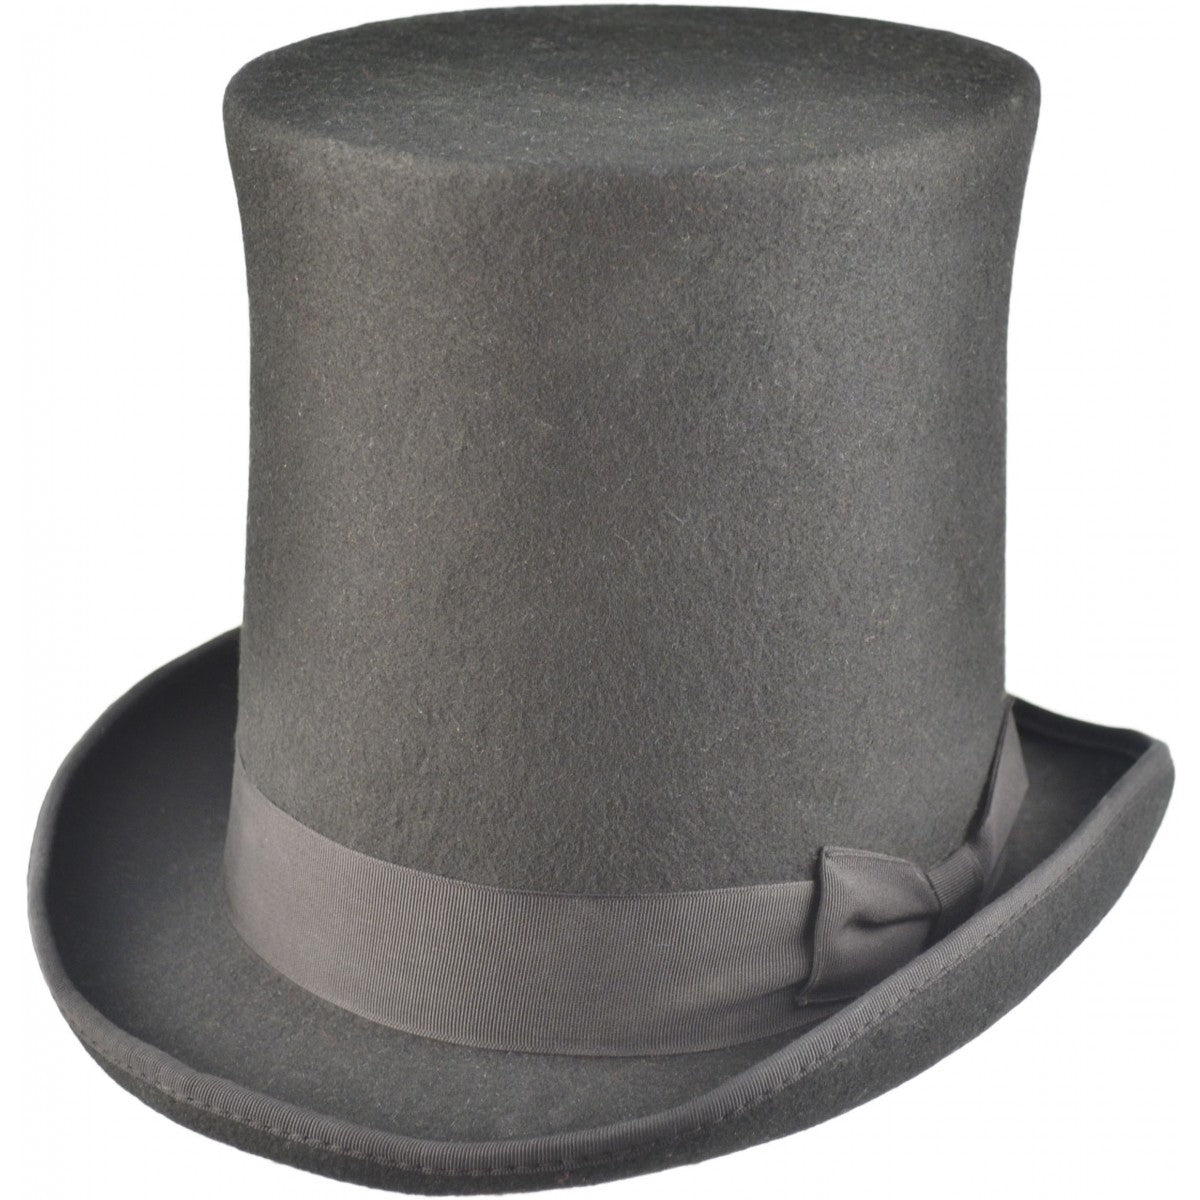 7e4be94e6 Black Wool Felt Steampunk Stovepipe Hat, Very Tall Top Hat